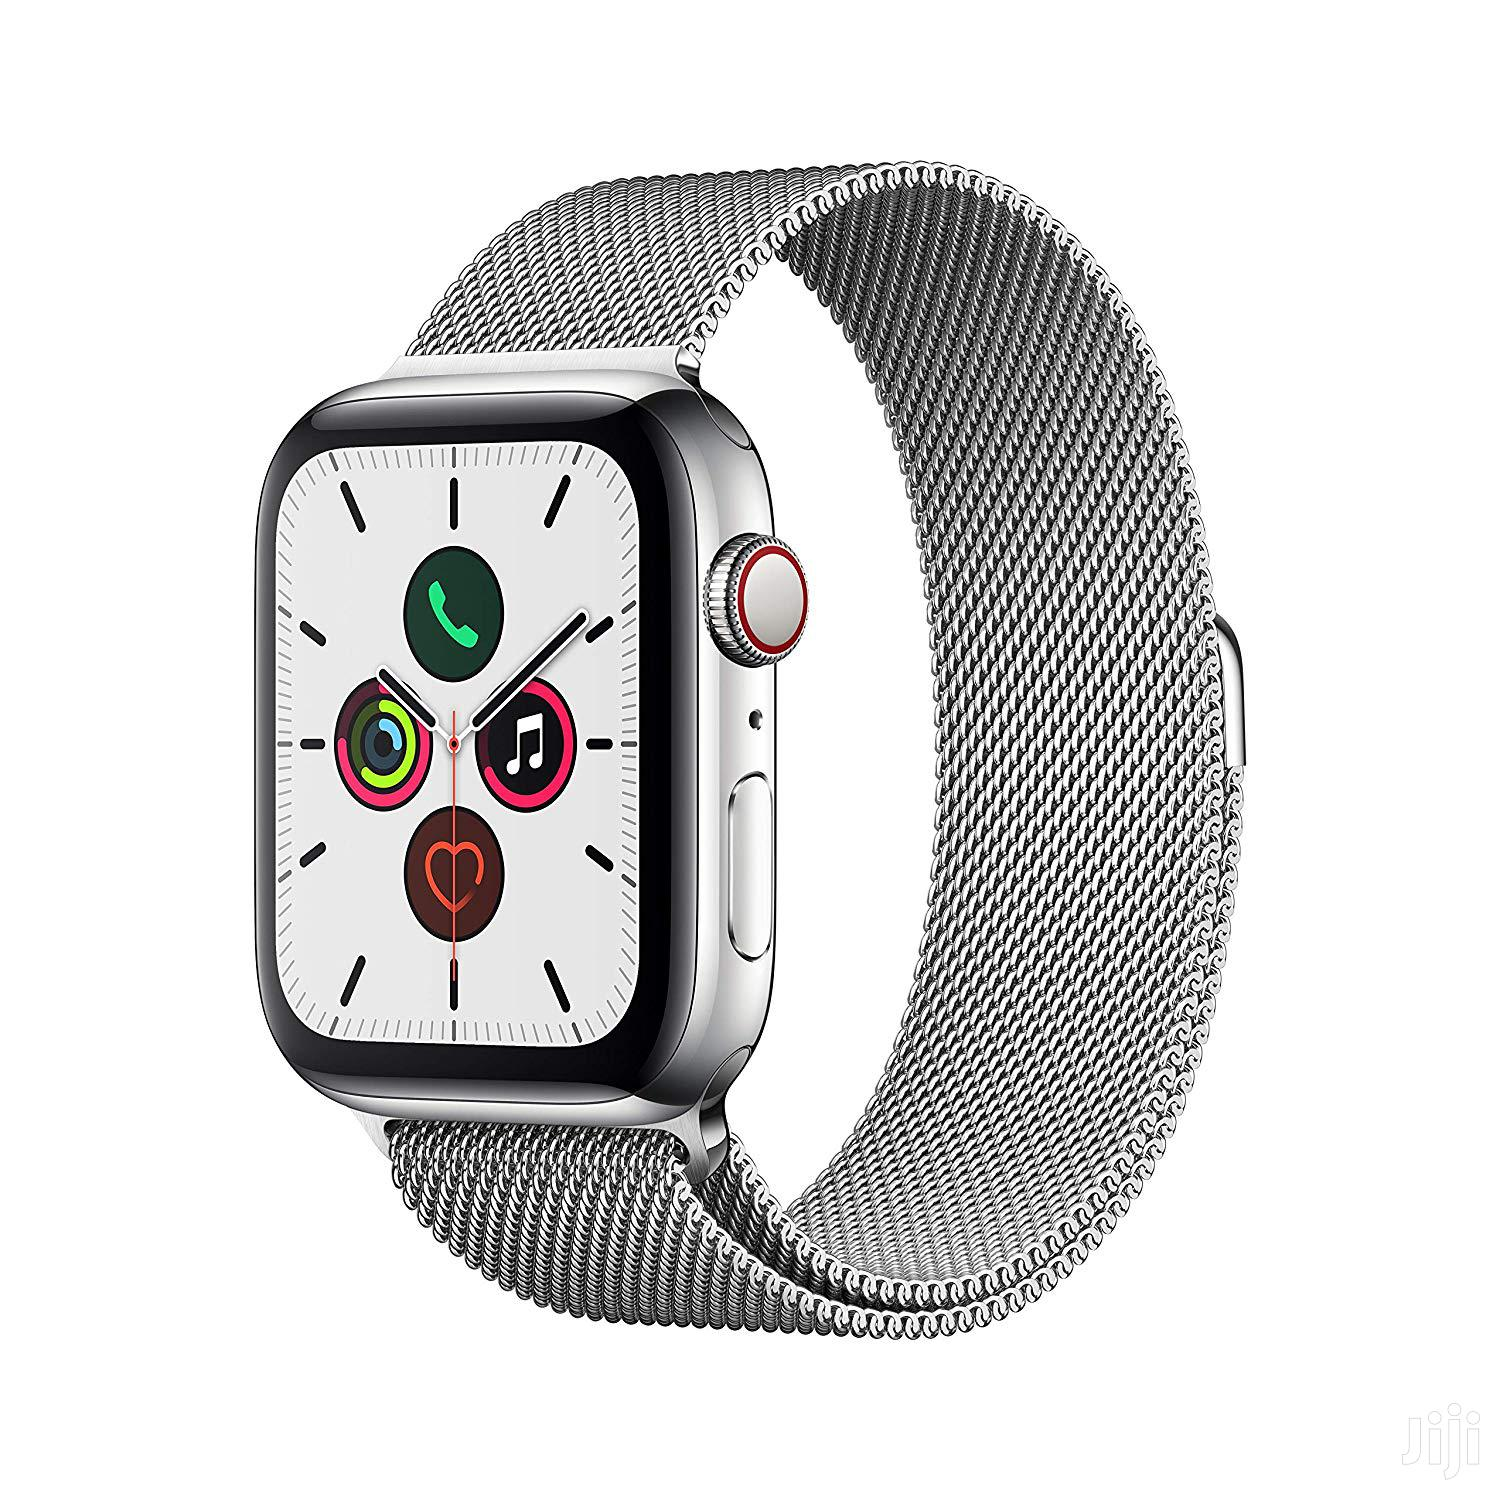 Apple Watch Series 5 (GPS/Cellular) Stainless Steel | Smart Watches & Trackers for sale in Osu, Greater Accra, Ghana